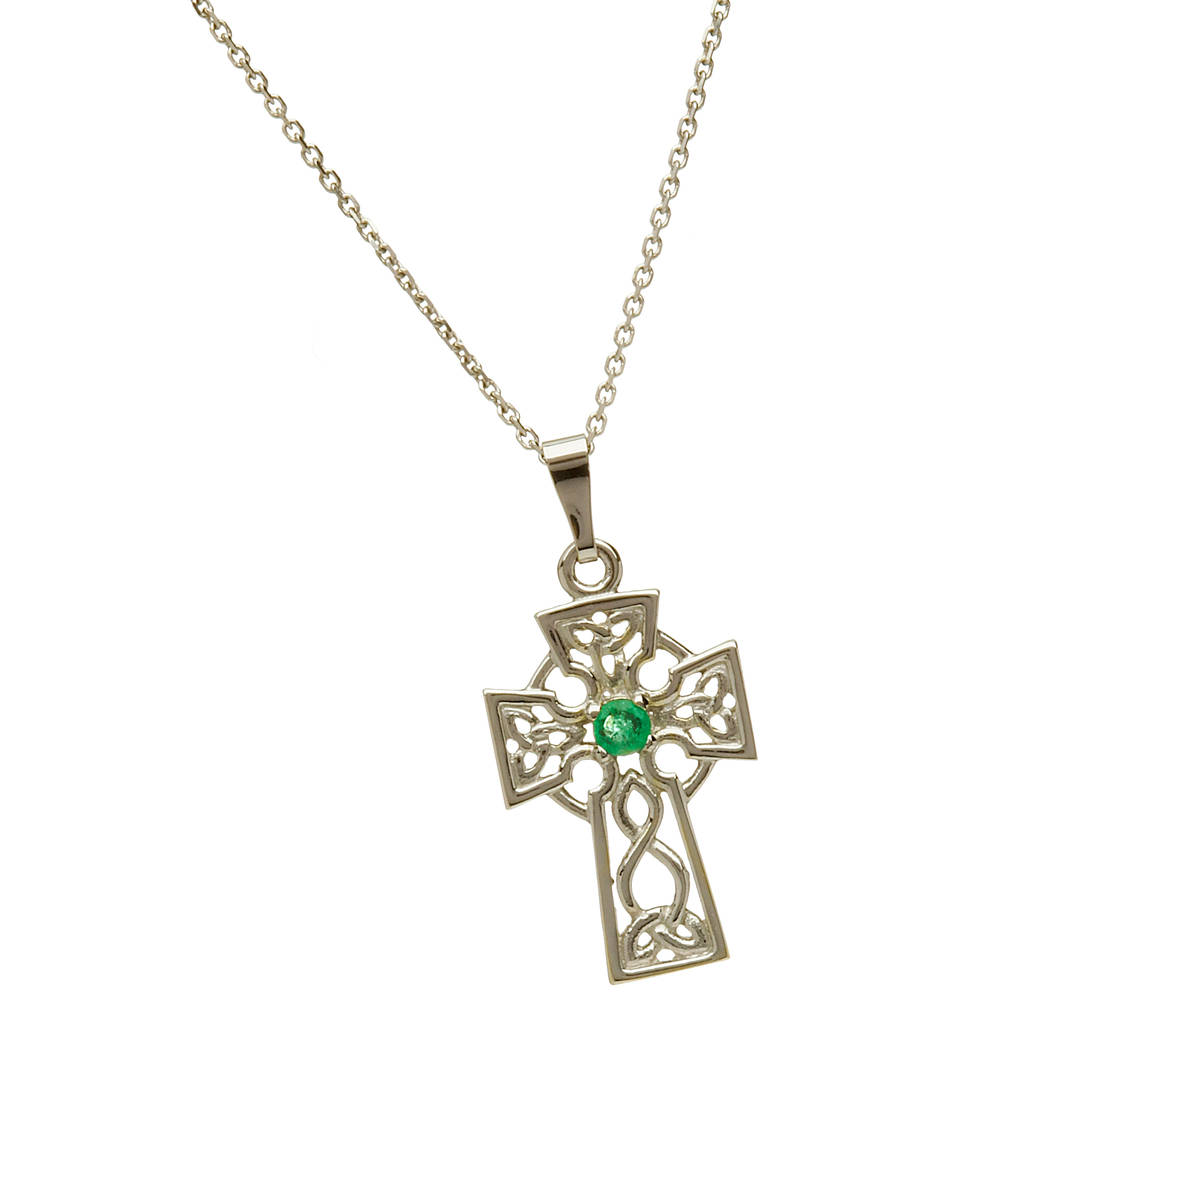 \n10 carat white gold filigree Celtic cross pendant with emerald.This has a beautiful emerald mounted in the heart of the cross.\nIf you prefer this pendant in yellow gold or in rose gold,please let us know of your preference in our comment box when you go to checkout.